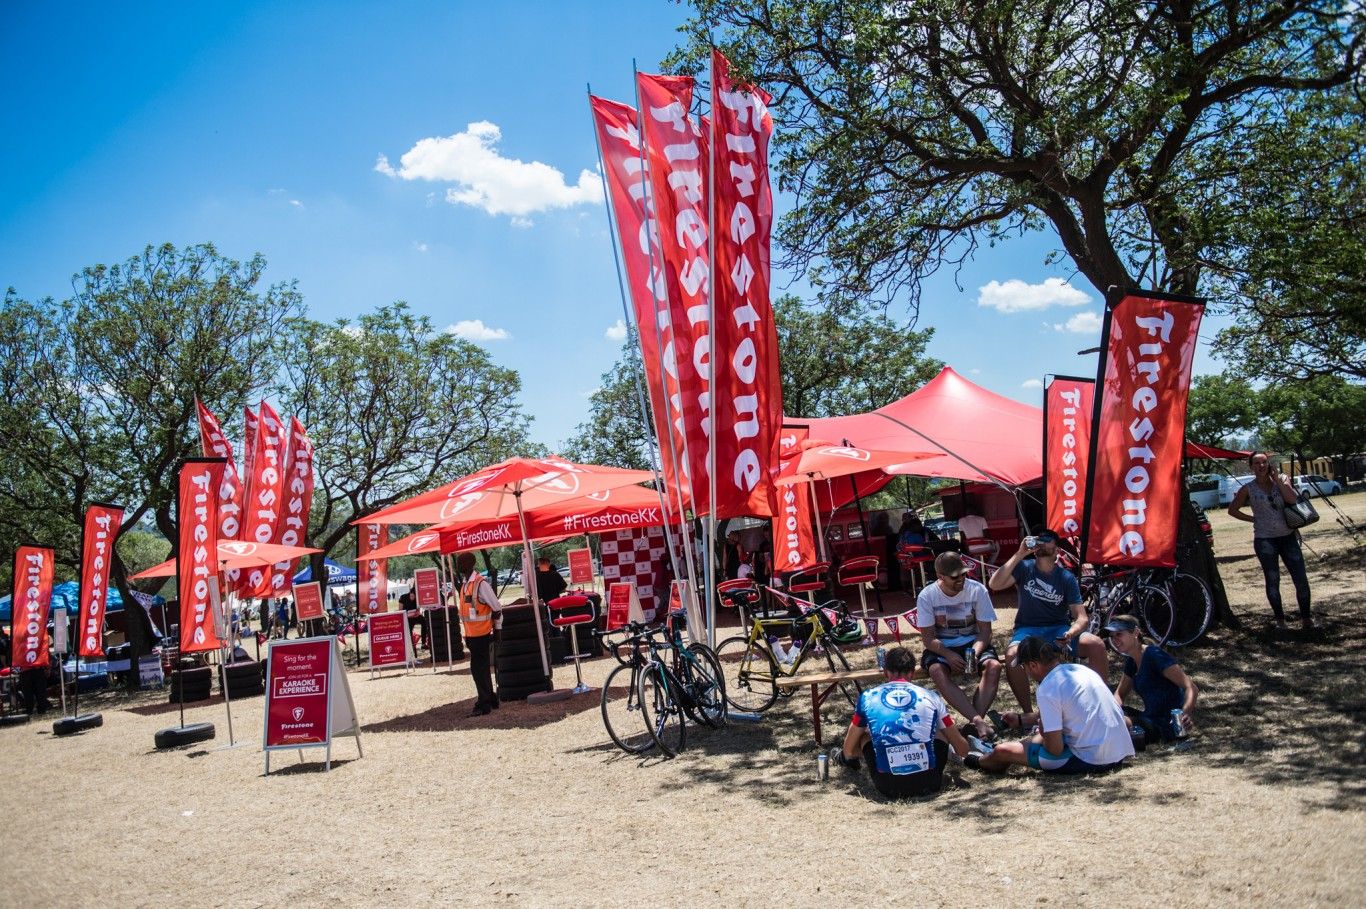 Firestone took the party to the Telkom 947 Cycle Challenge